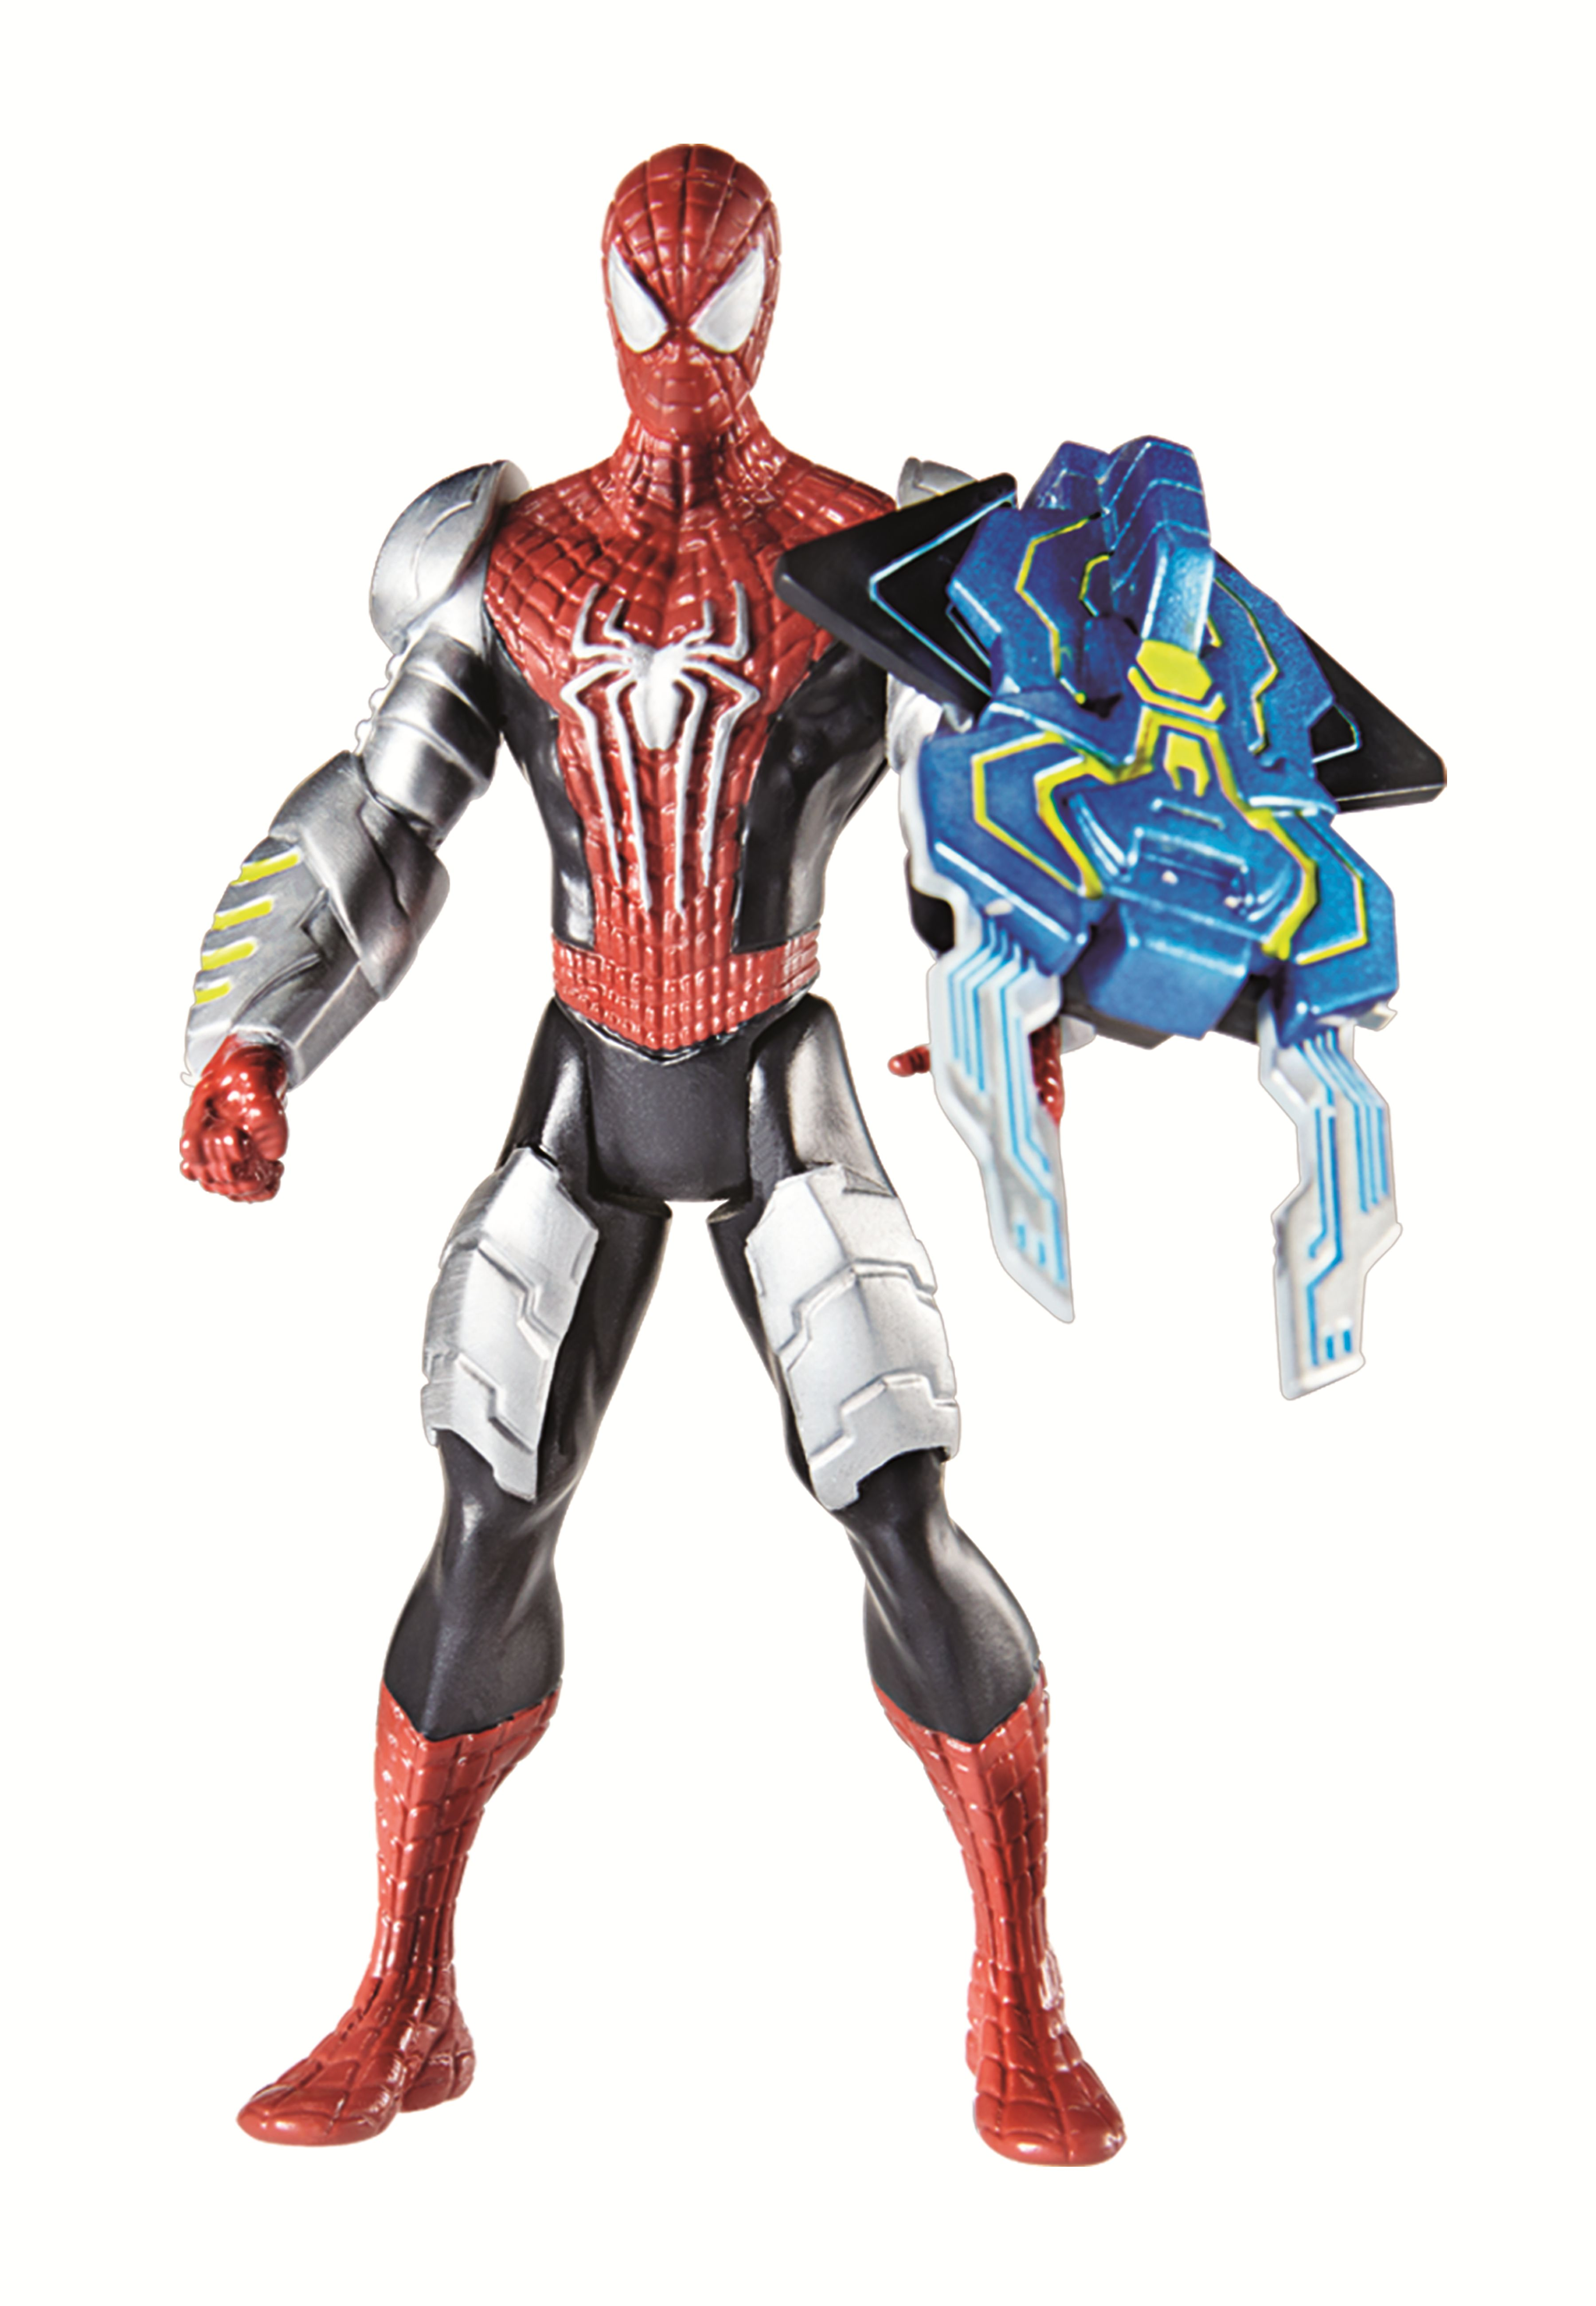 Hasbro Amazing Spiderman 2 Toys Press Release And Images ...